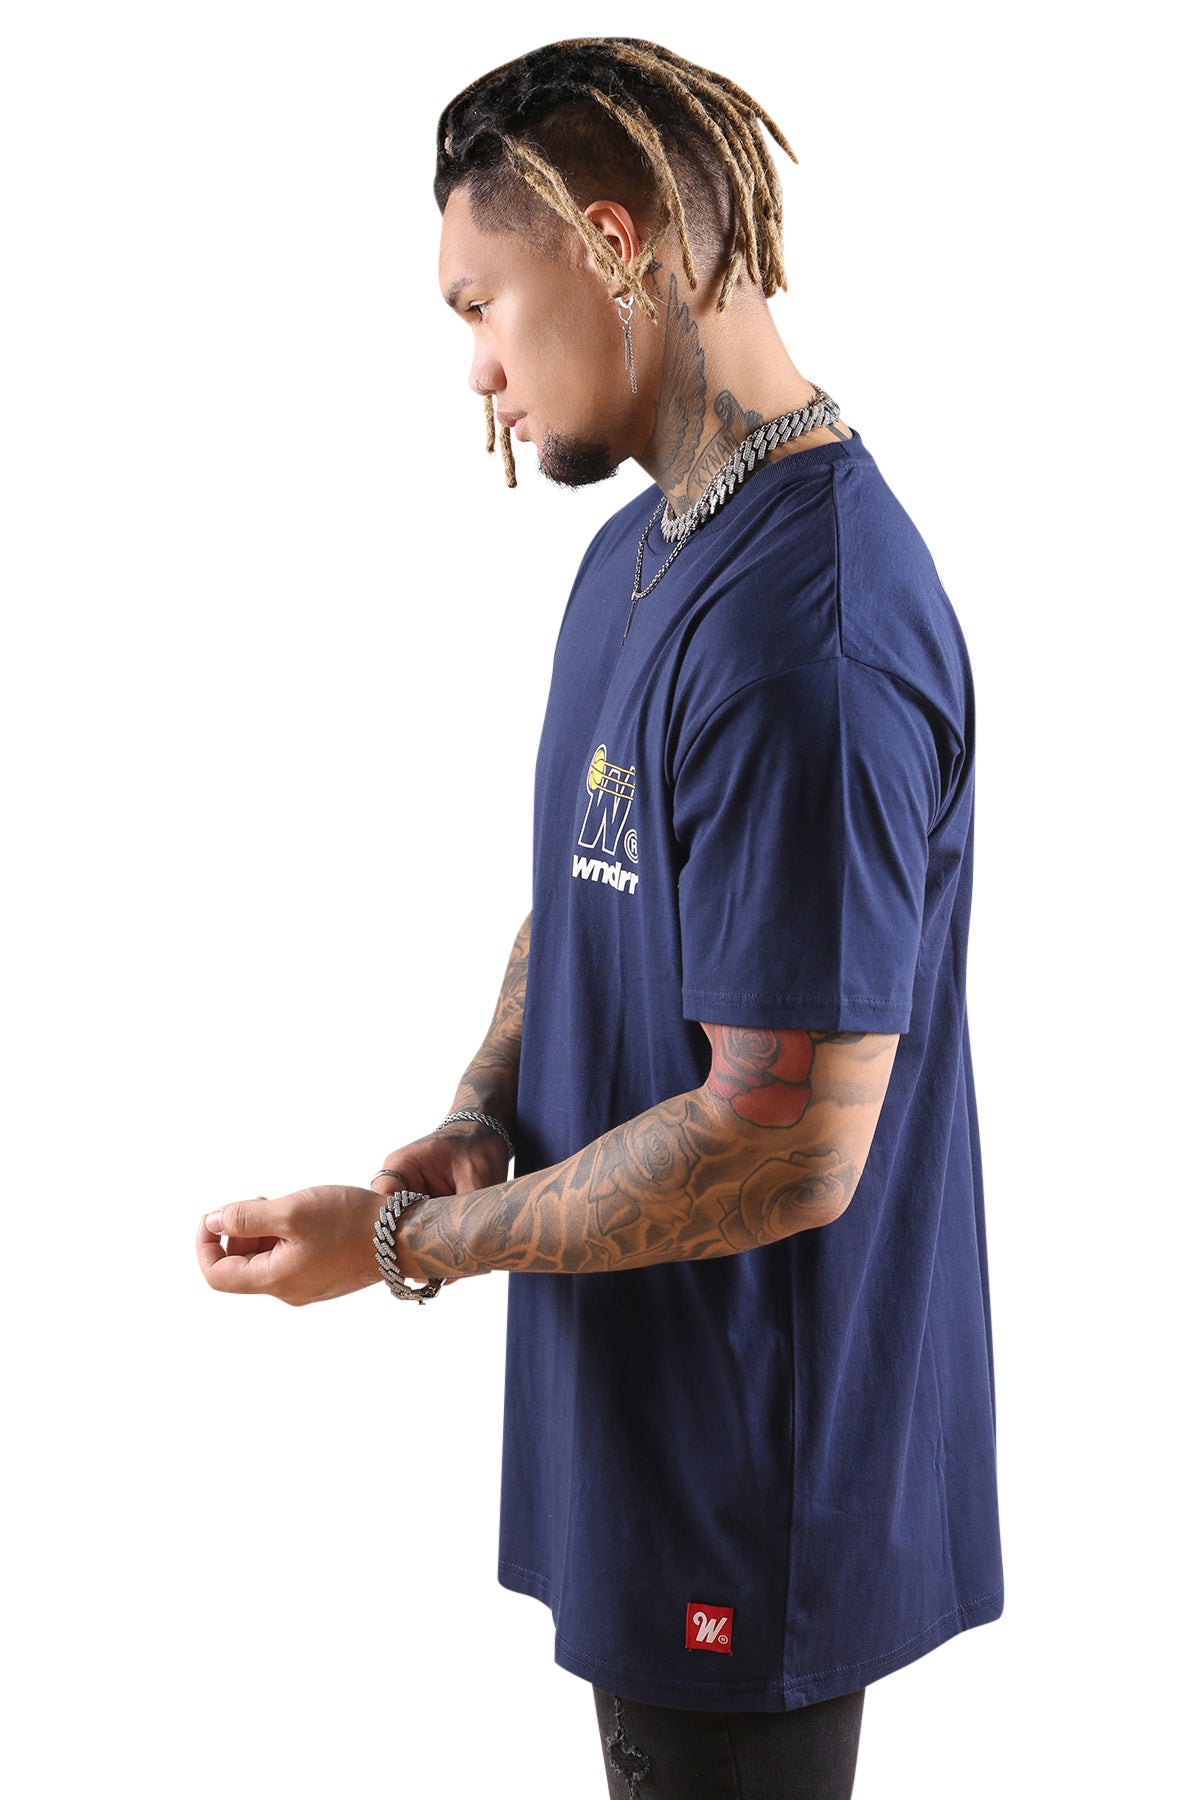 WNDRR In Bound Custom Fit Tee Navy Angle 2